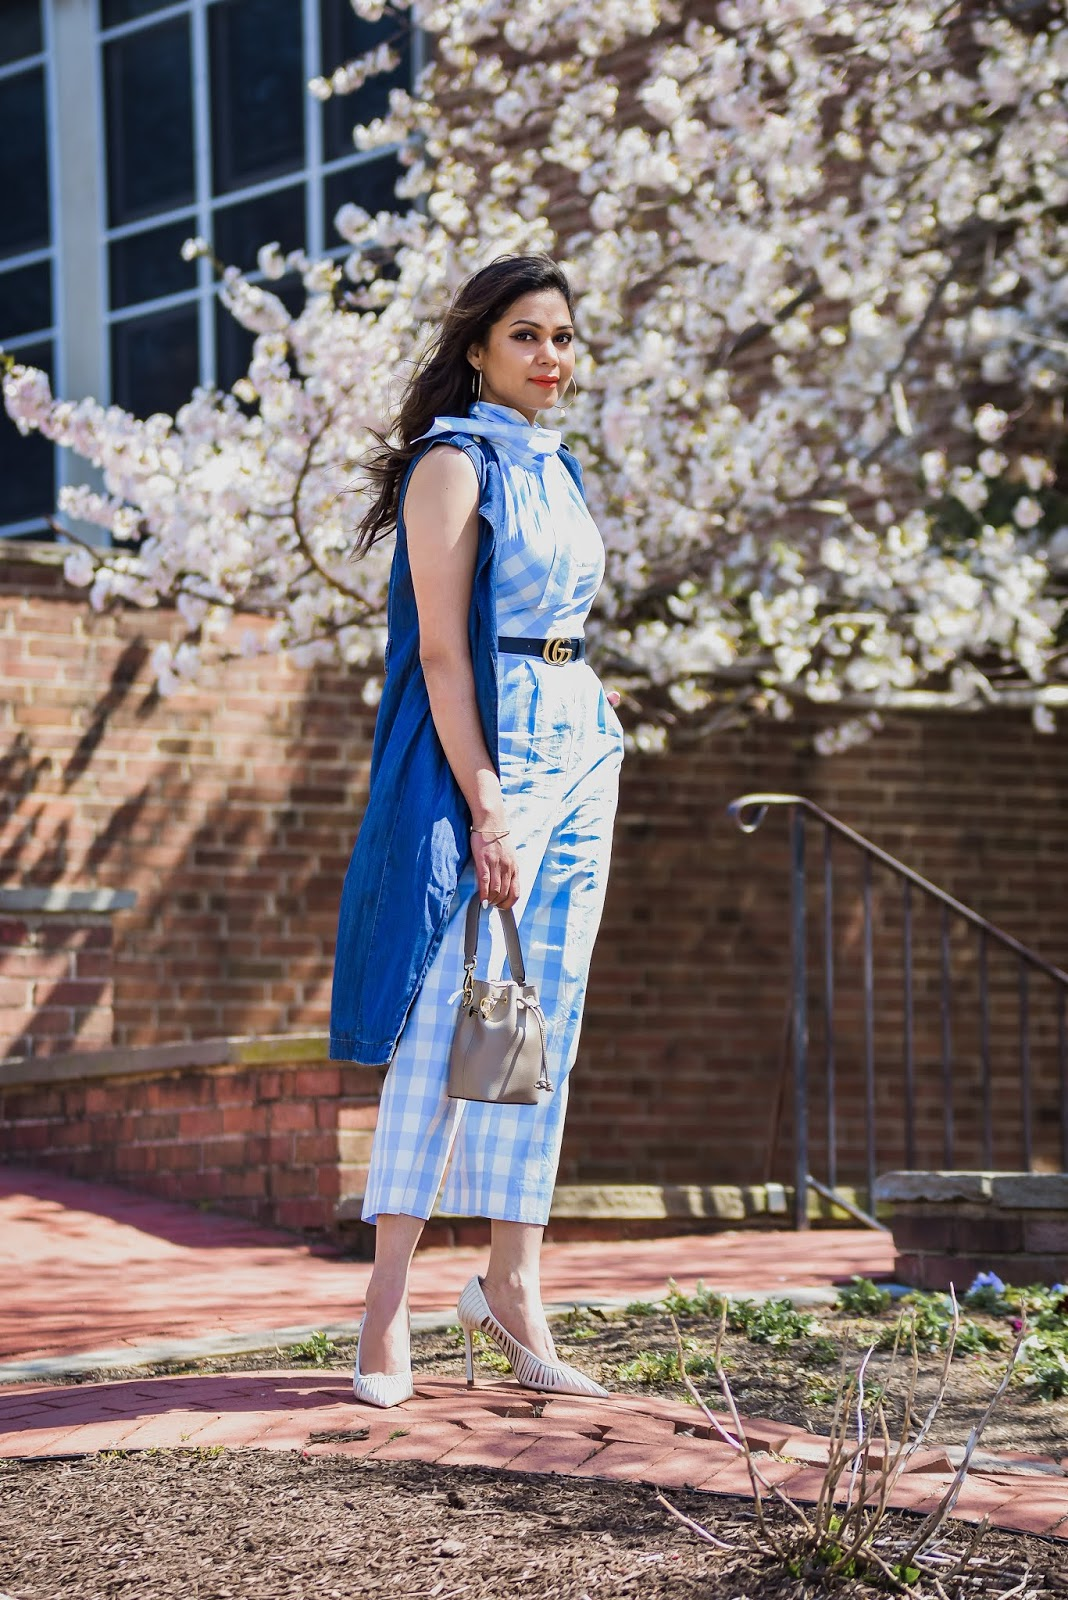 Dc cherry blossom, facts about cherry blossom, DC festival, spring in DC, must see in DC, thinks to do in Dc, j crew plaiod jumpsuit, blue jumpsuit outfit, caged white pumps, myriad musings, Saumya shiohare